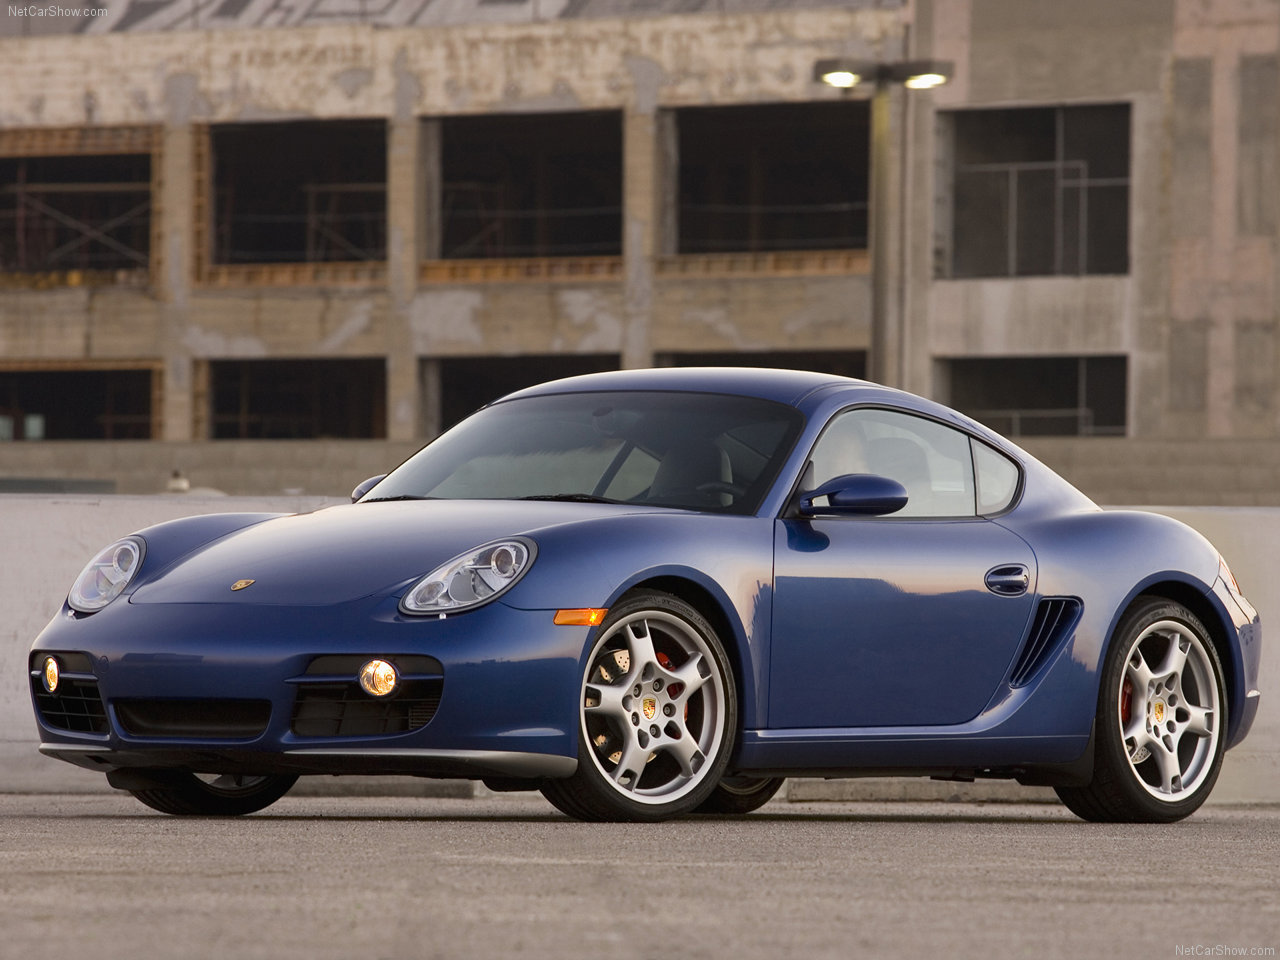 porsche cayman s related images start 150 weili. Black Bedroom Furniture Sets. Home Design Ideas